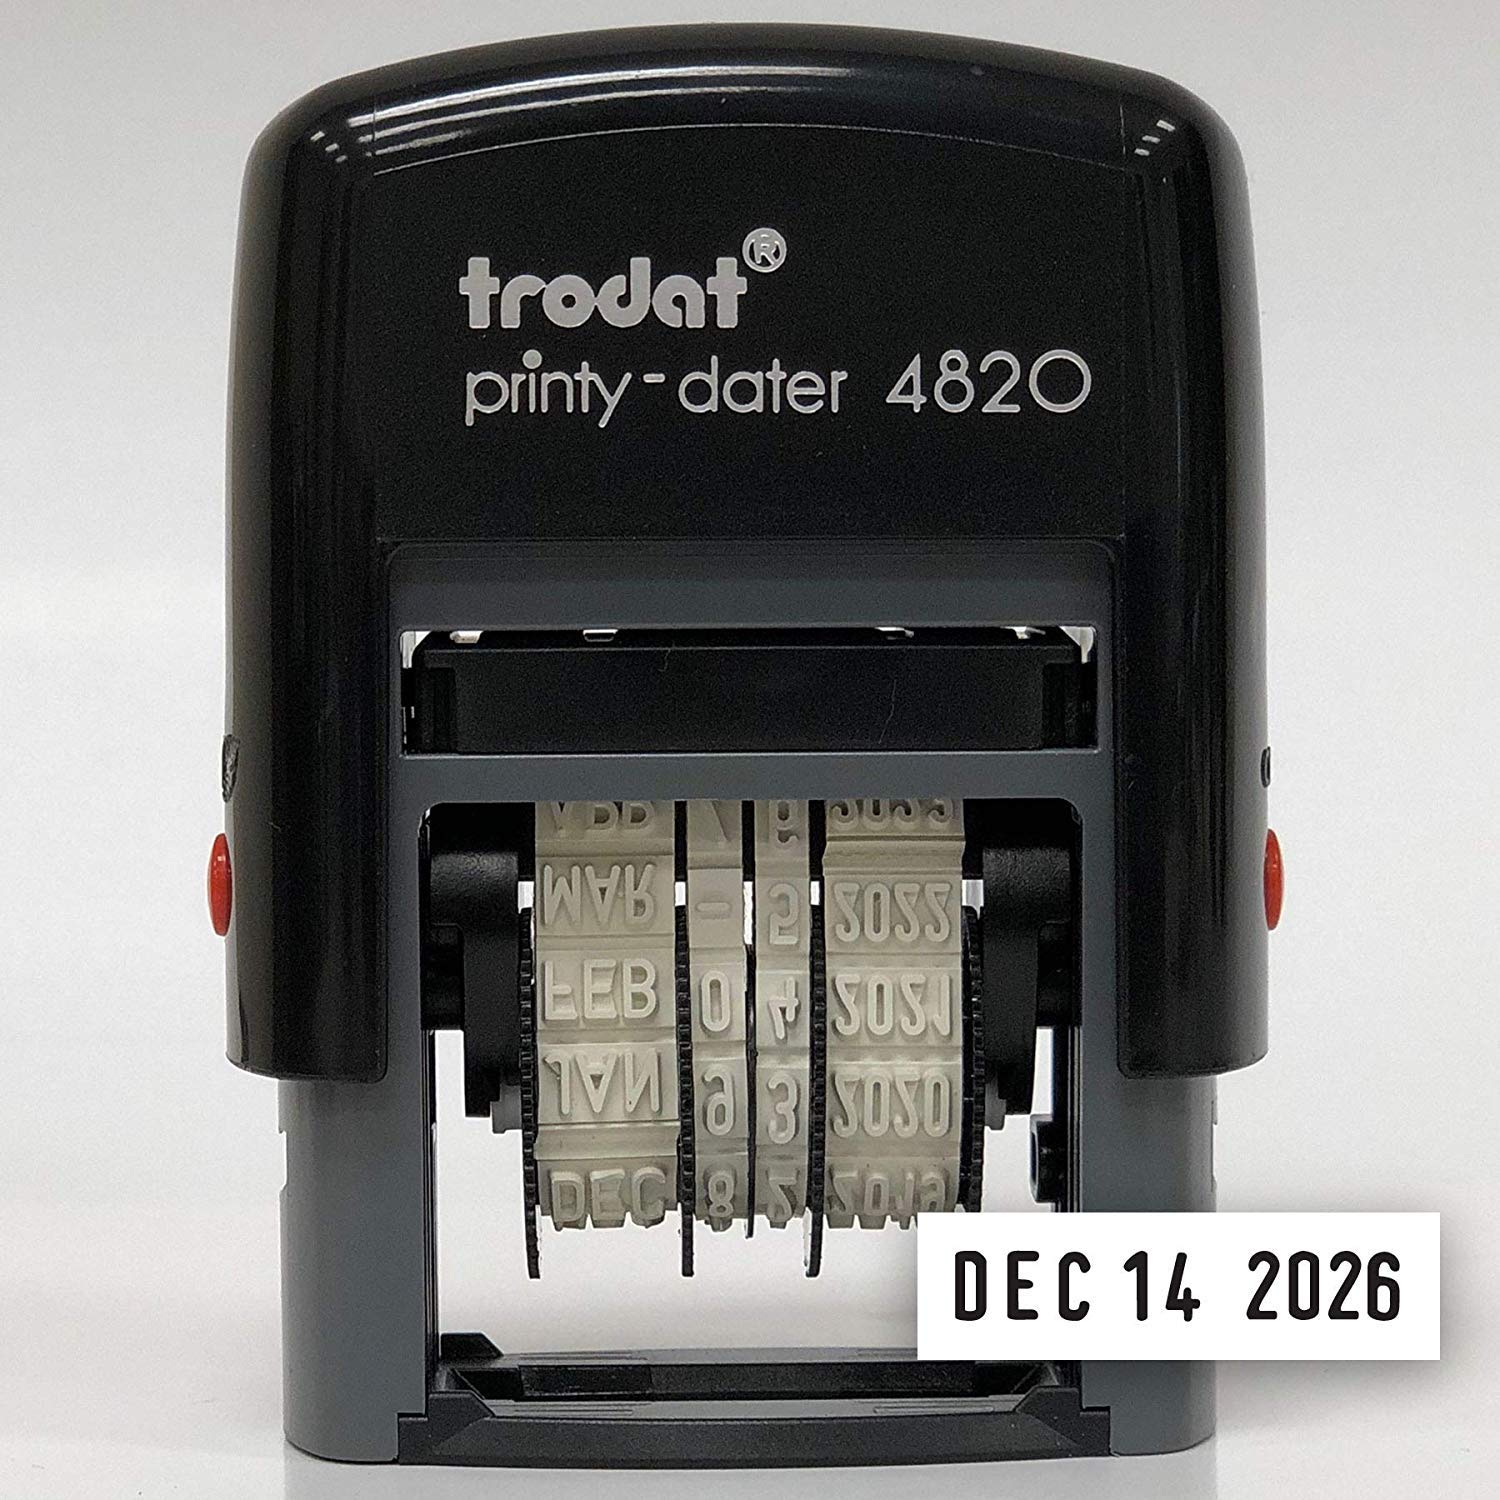 Trodat Printy Economy Date Stamp, Self-Inking, Stamp Impression Size: 3/8 x 1-1/4 Inches, Black (E4820)